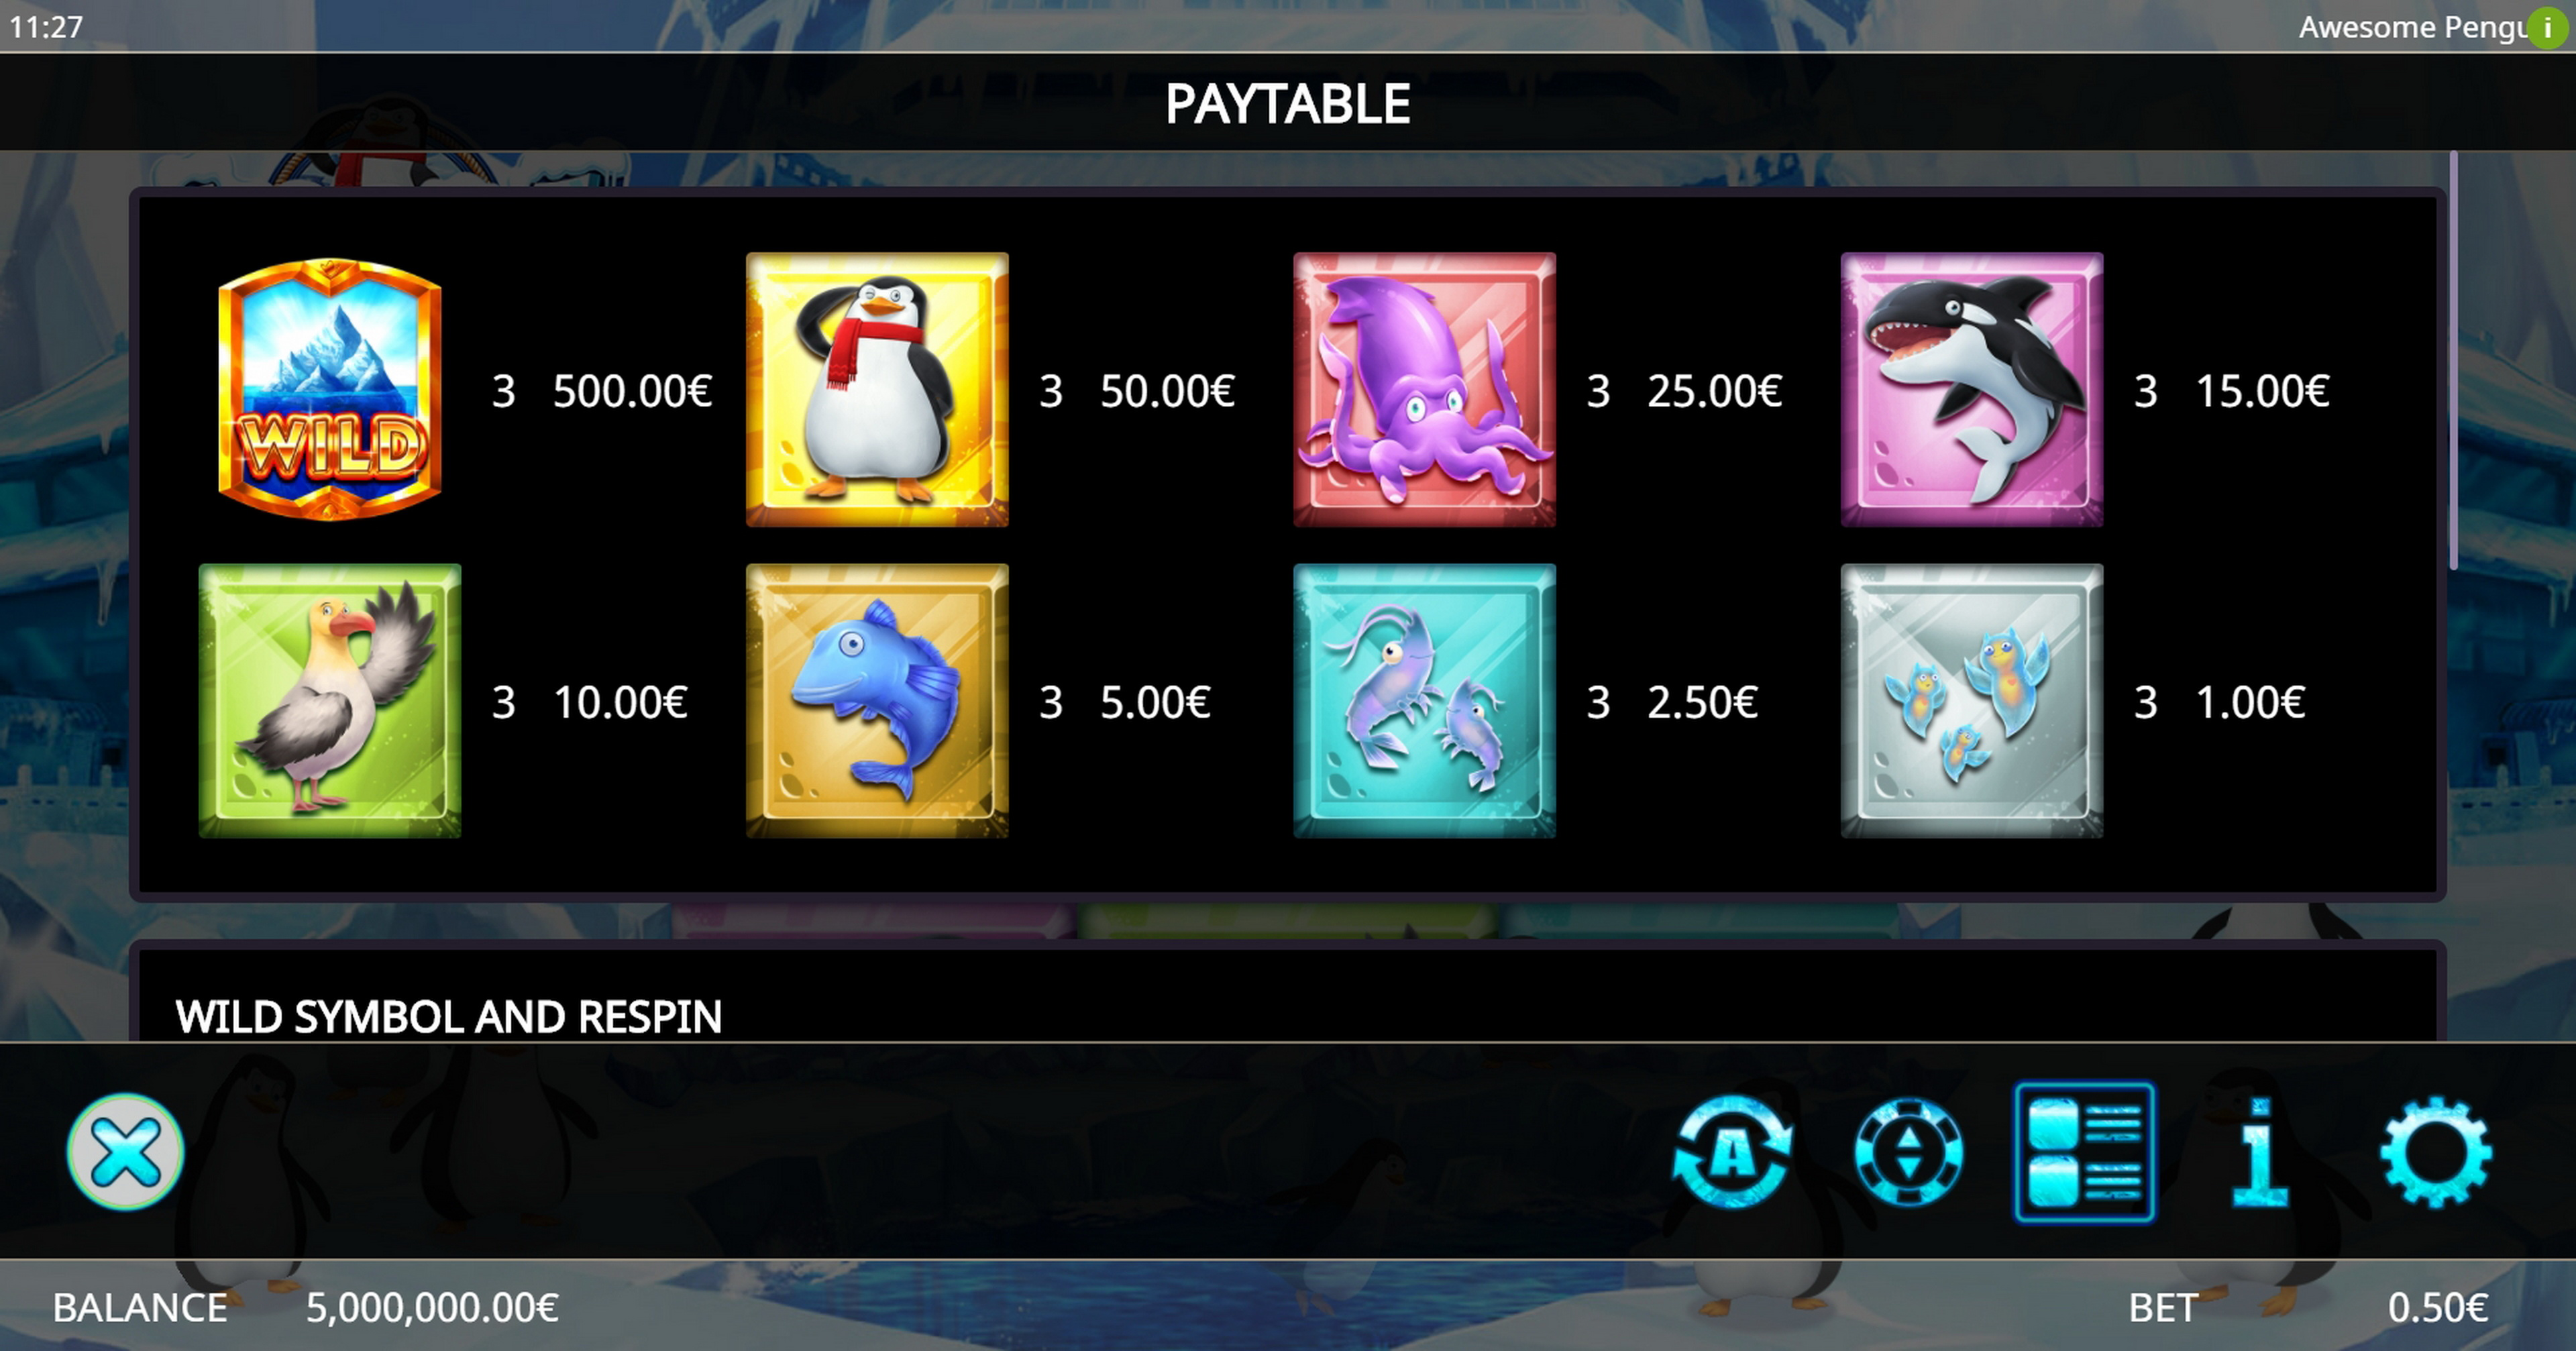 Info of Awesome Penguin Slot Game by Ganapati